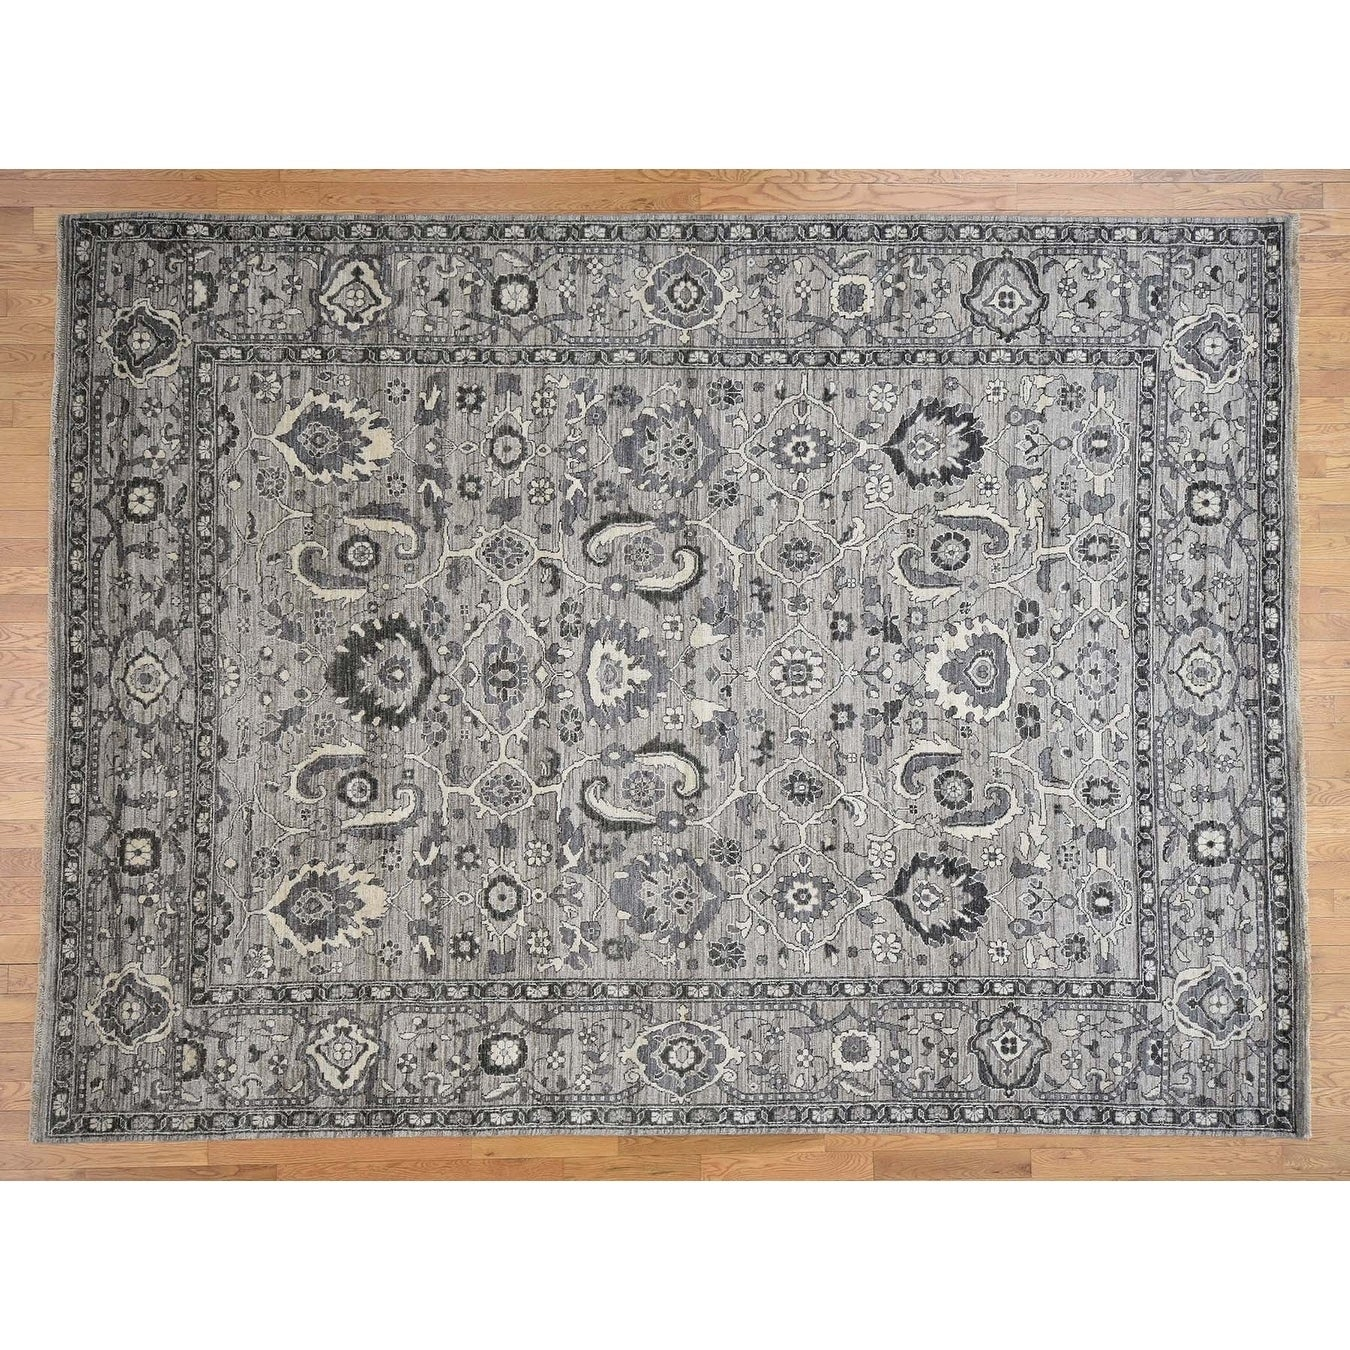 Hand Knotted Grey Oushak And Peshawar with Wool Oriental Rug - 91 x 123